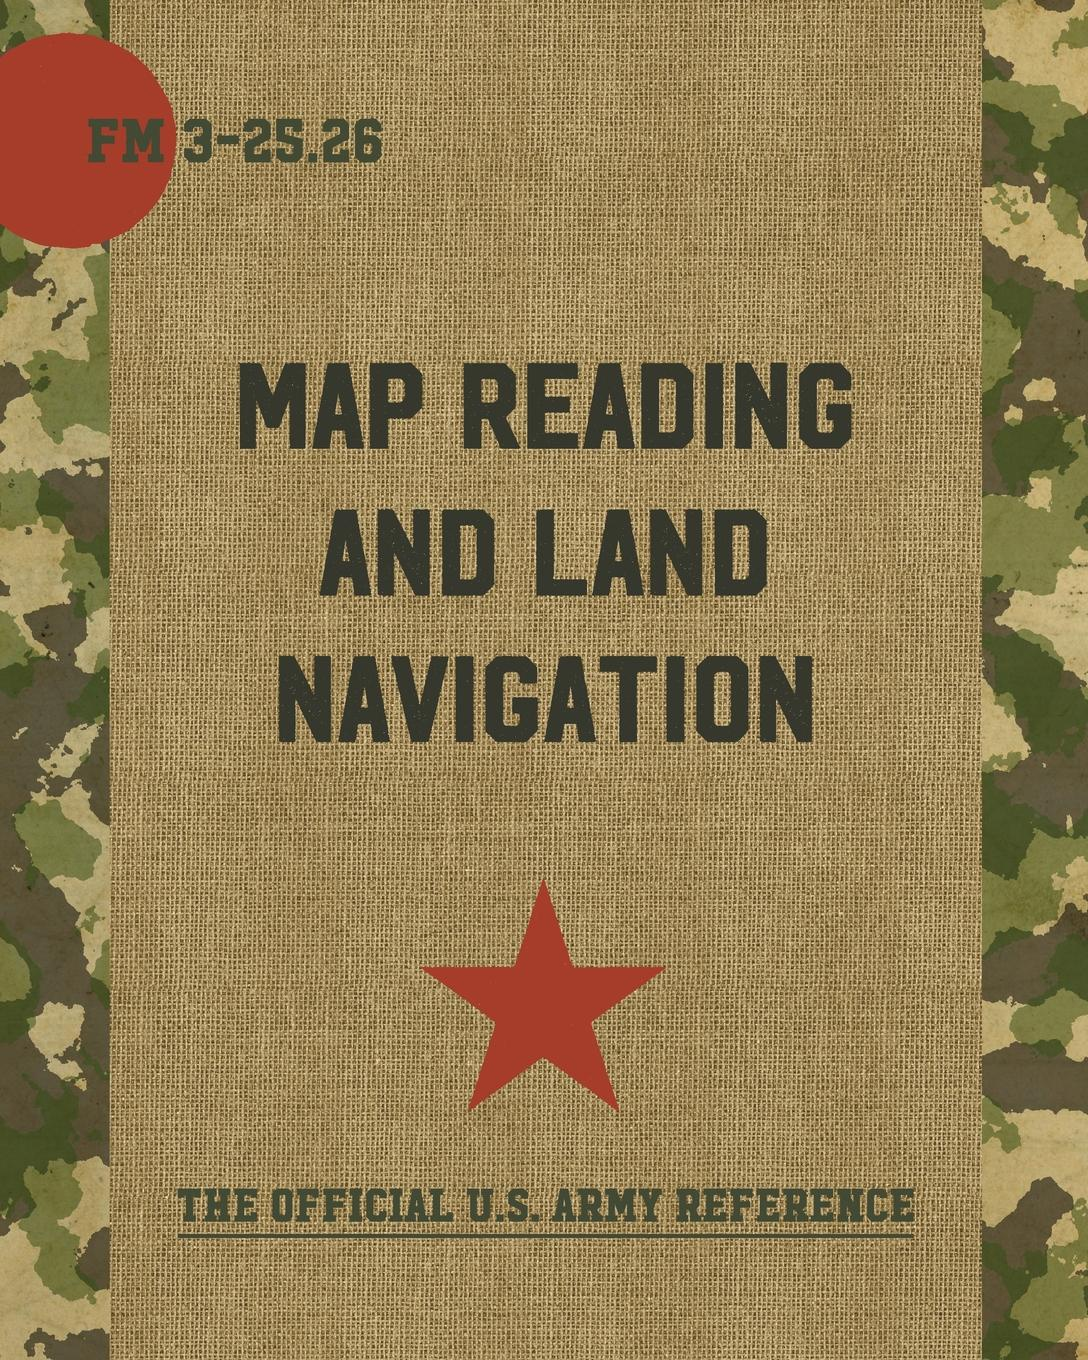 Department of the Army Map Reading and Land Navigation. FM 3-25.26 helju pets meelespead isbn 9789949278367